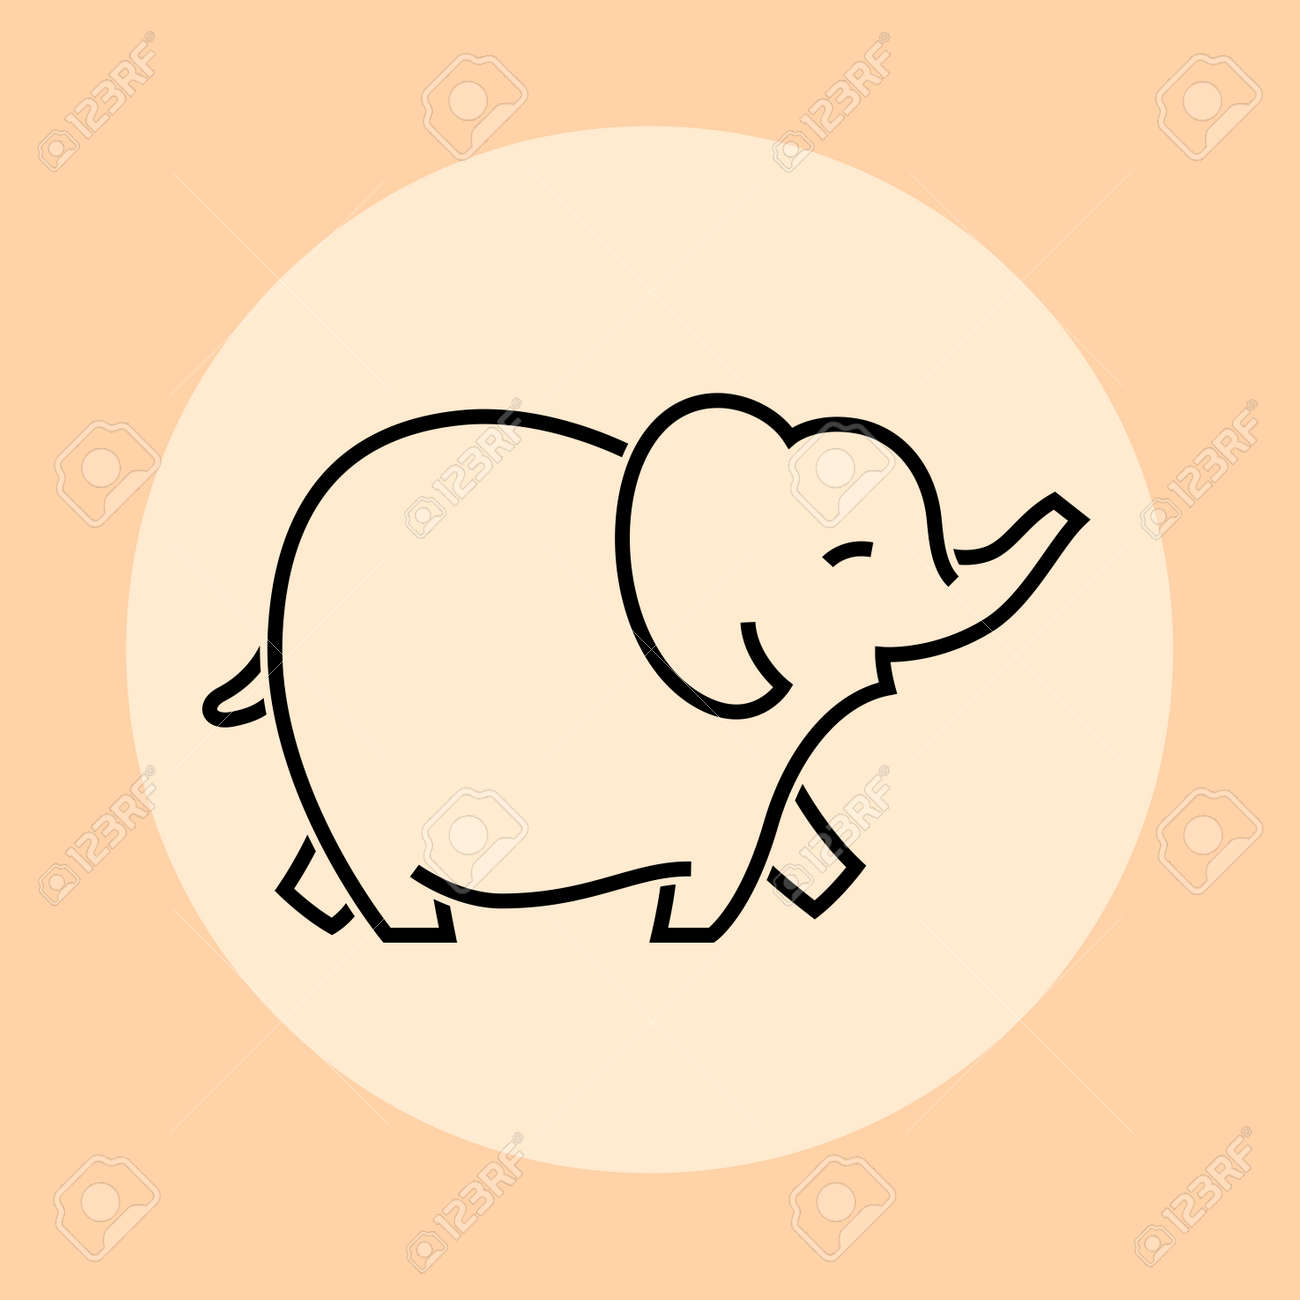 Elephant icon, vector illustration and simple design. - 165896997